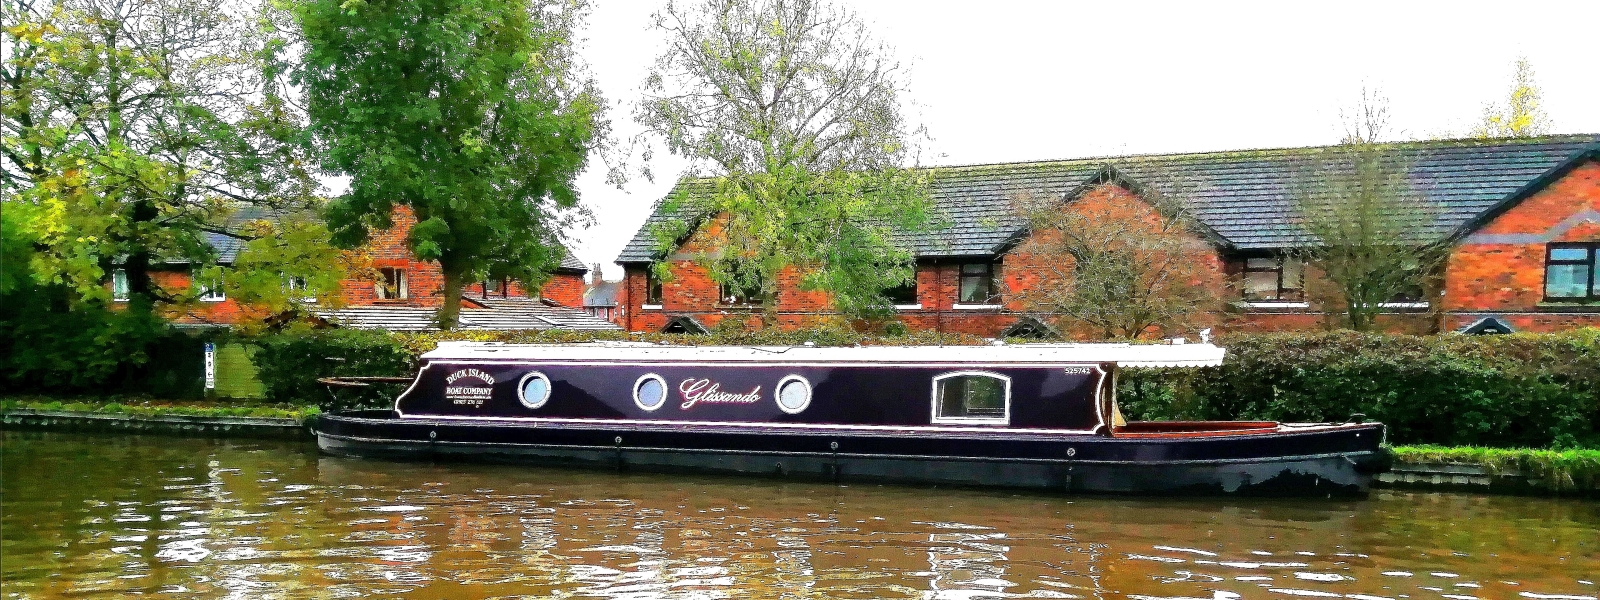 Luxury lock free canal boat holidays